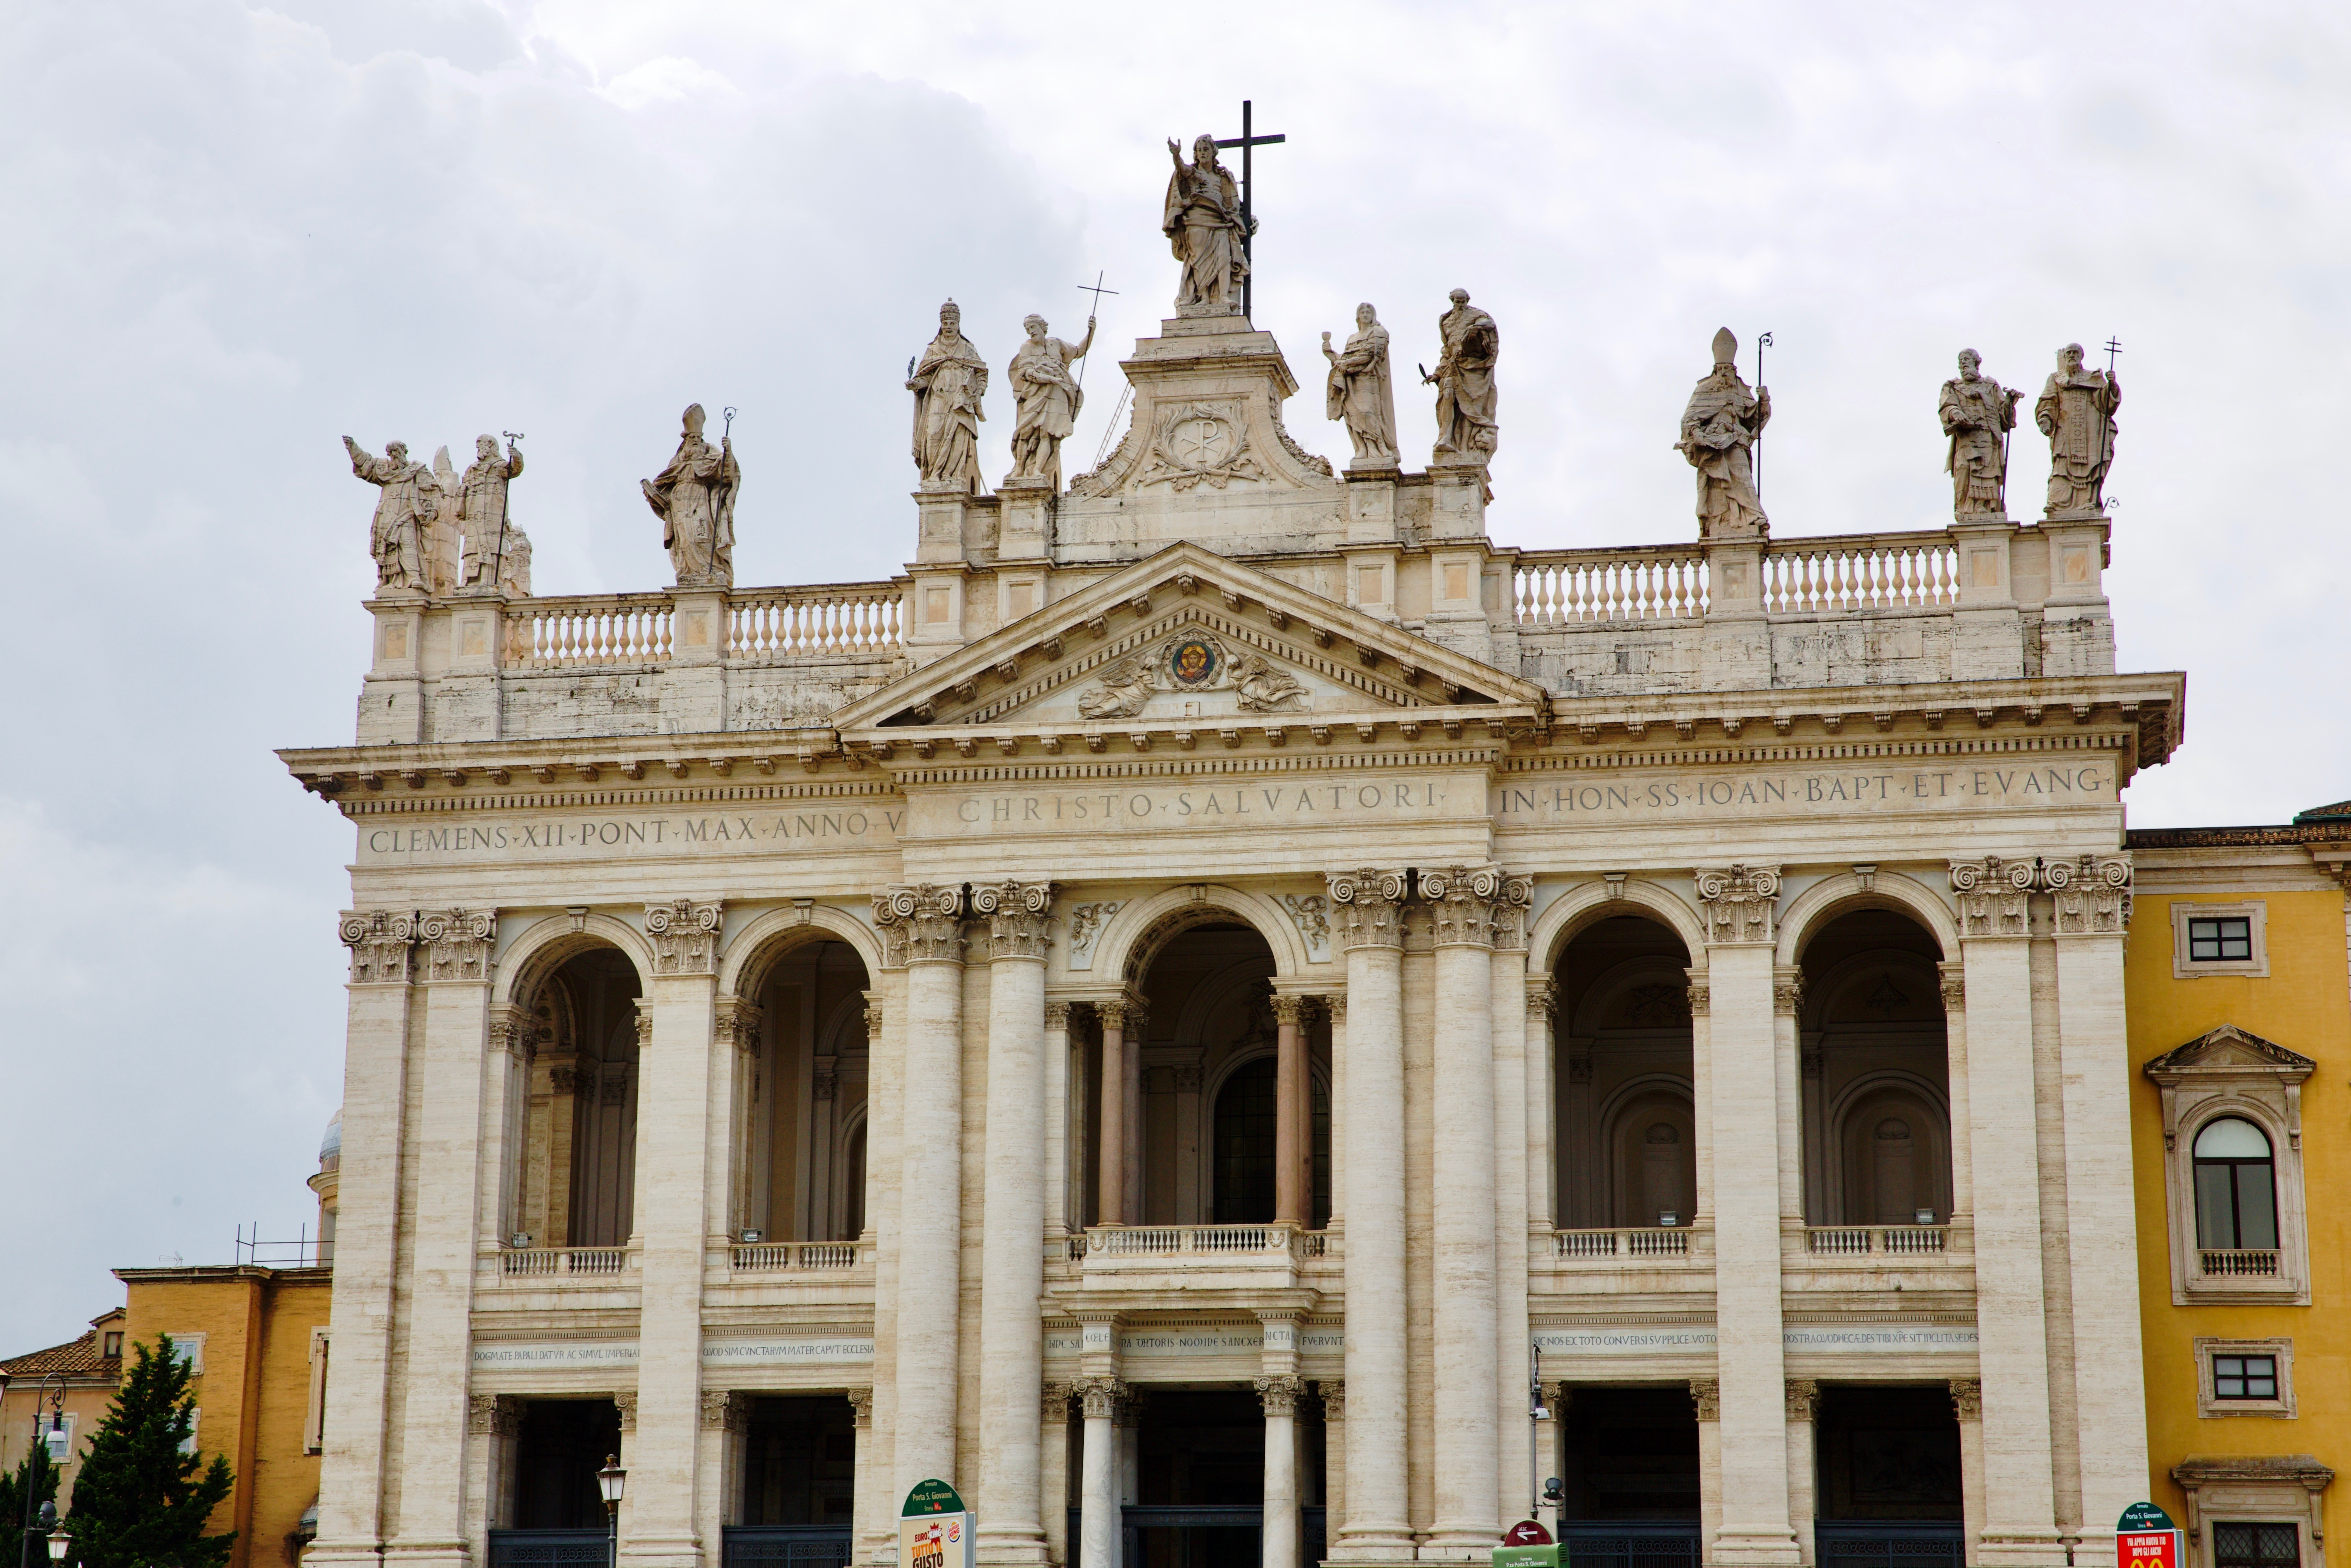 The Cathedral of the Most Holy Savior and of Saints John the Baptist and the Evangelist in the Lateran in Rome is also known as the Archbasilica of St. John Lateran.